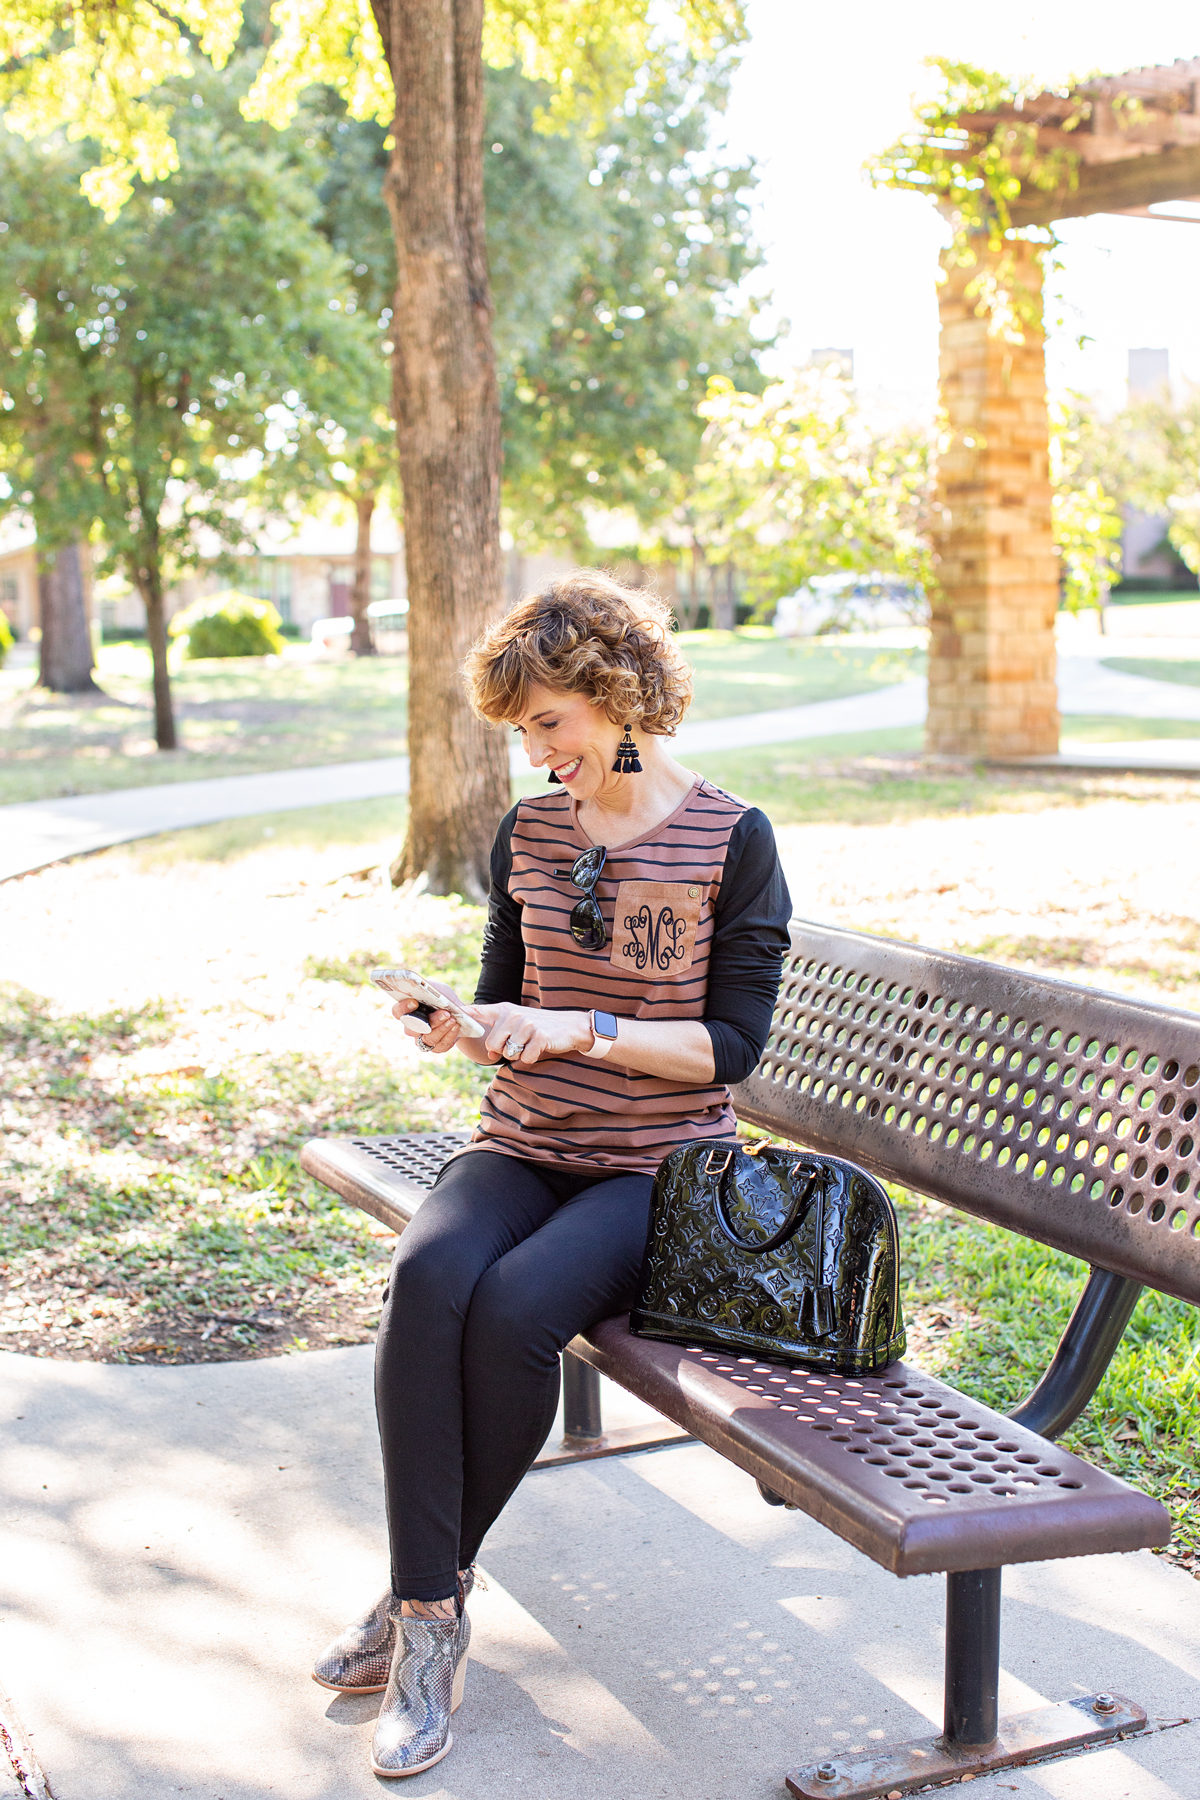 woman dressed in brown and black striped shirt sitting on a park bench looking at her phone